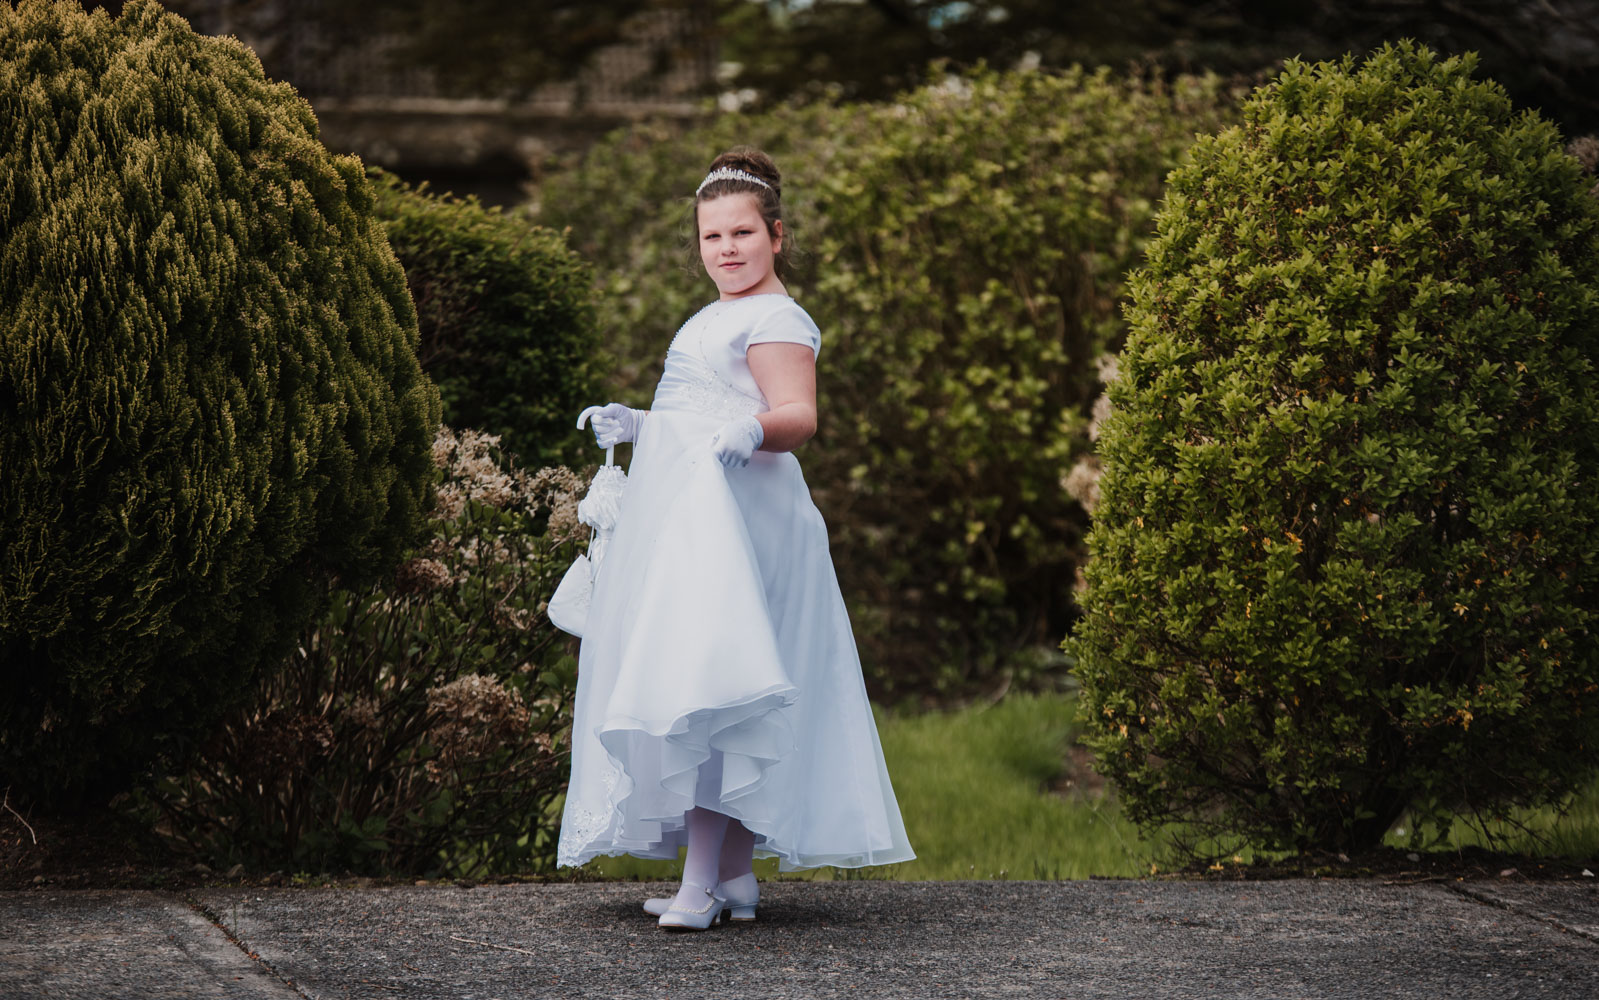 Ola and her Communion Day 05.05.18